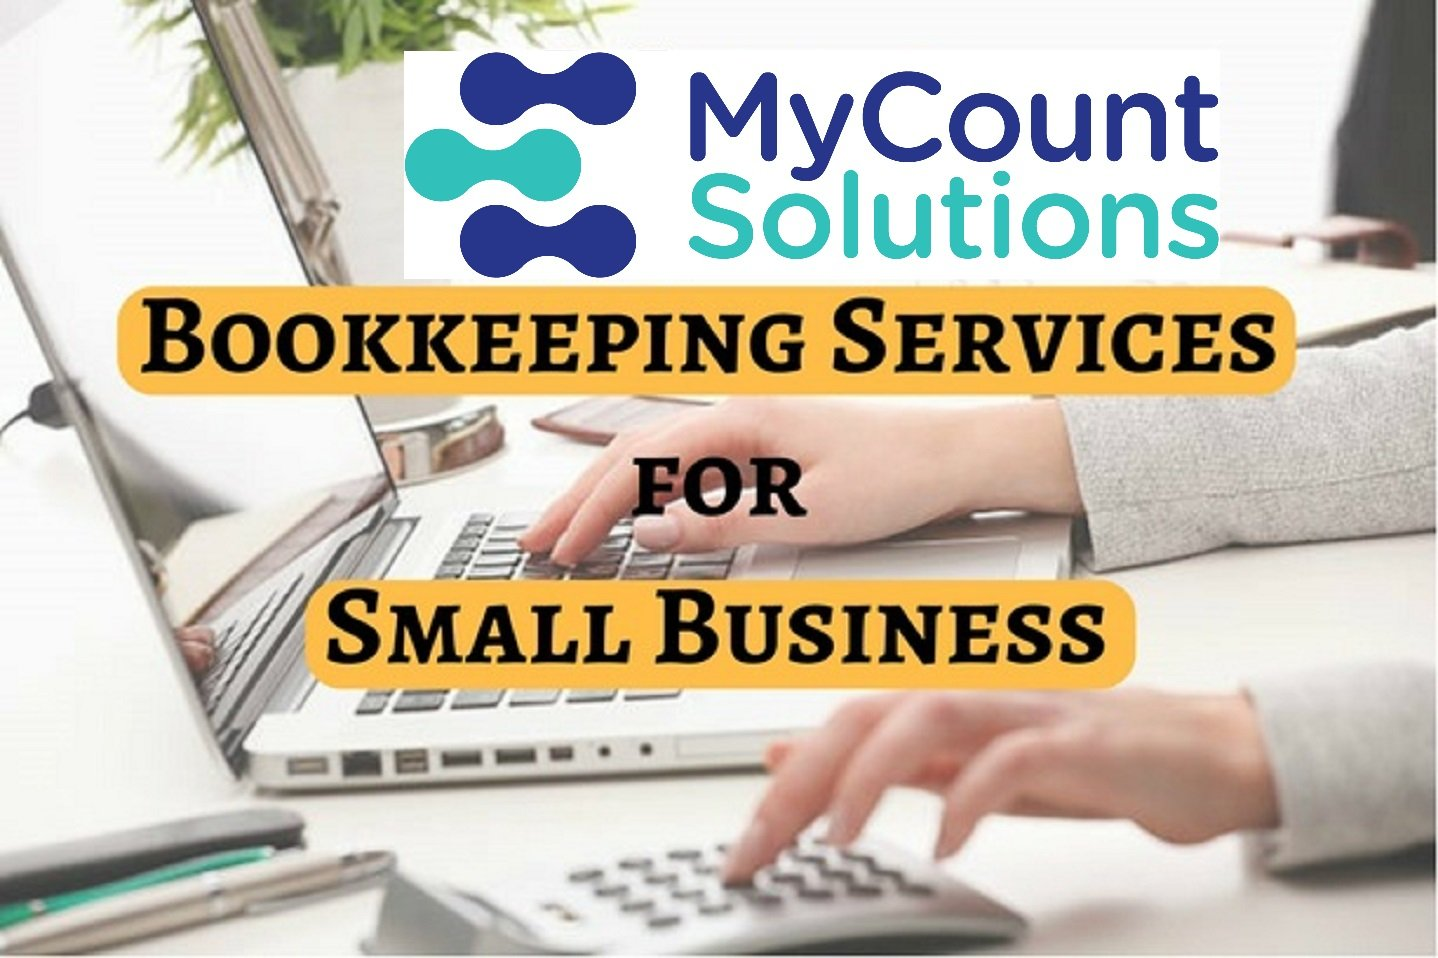 Online Bookkeeping Services For Small Business